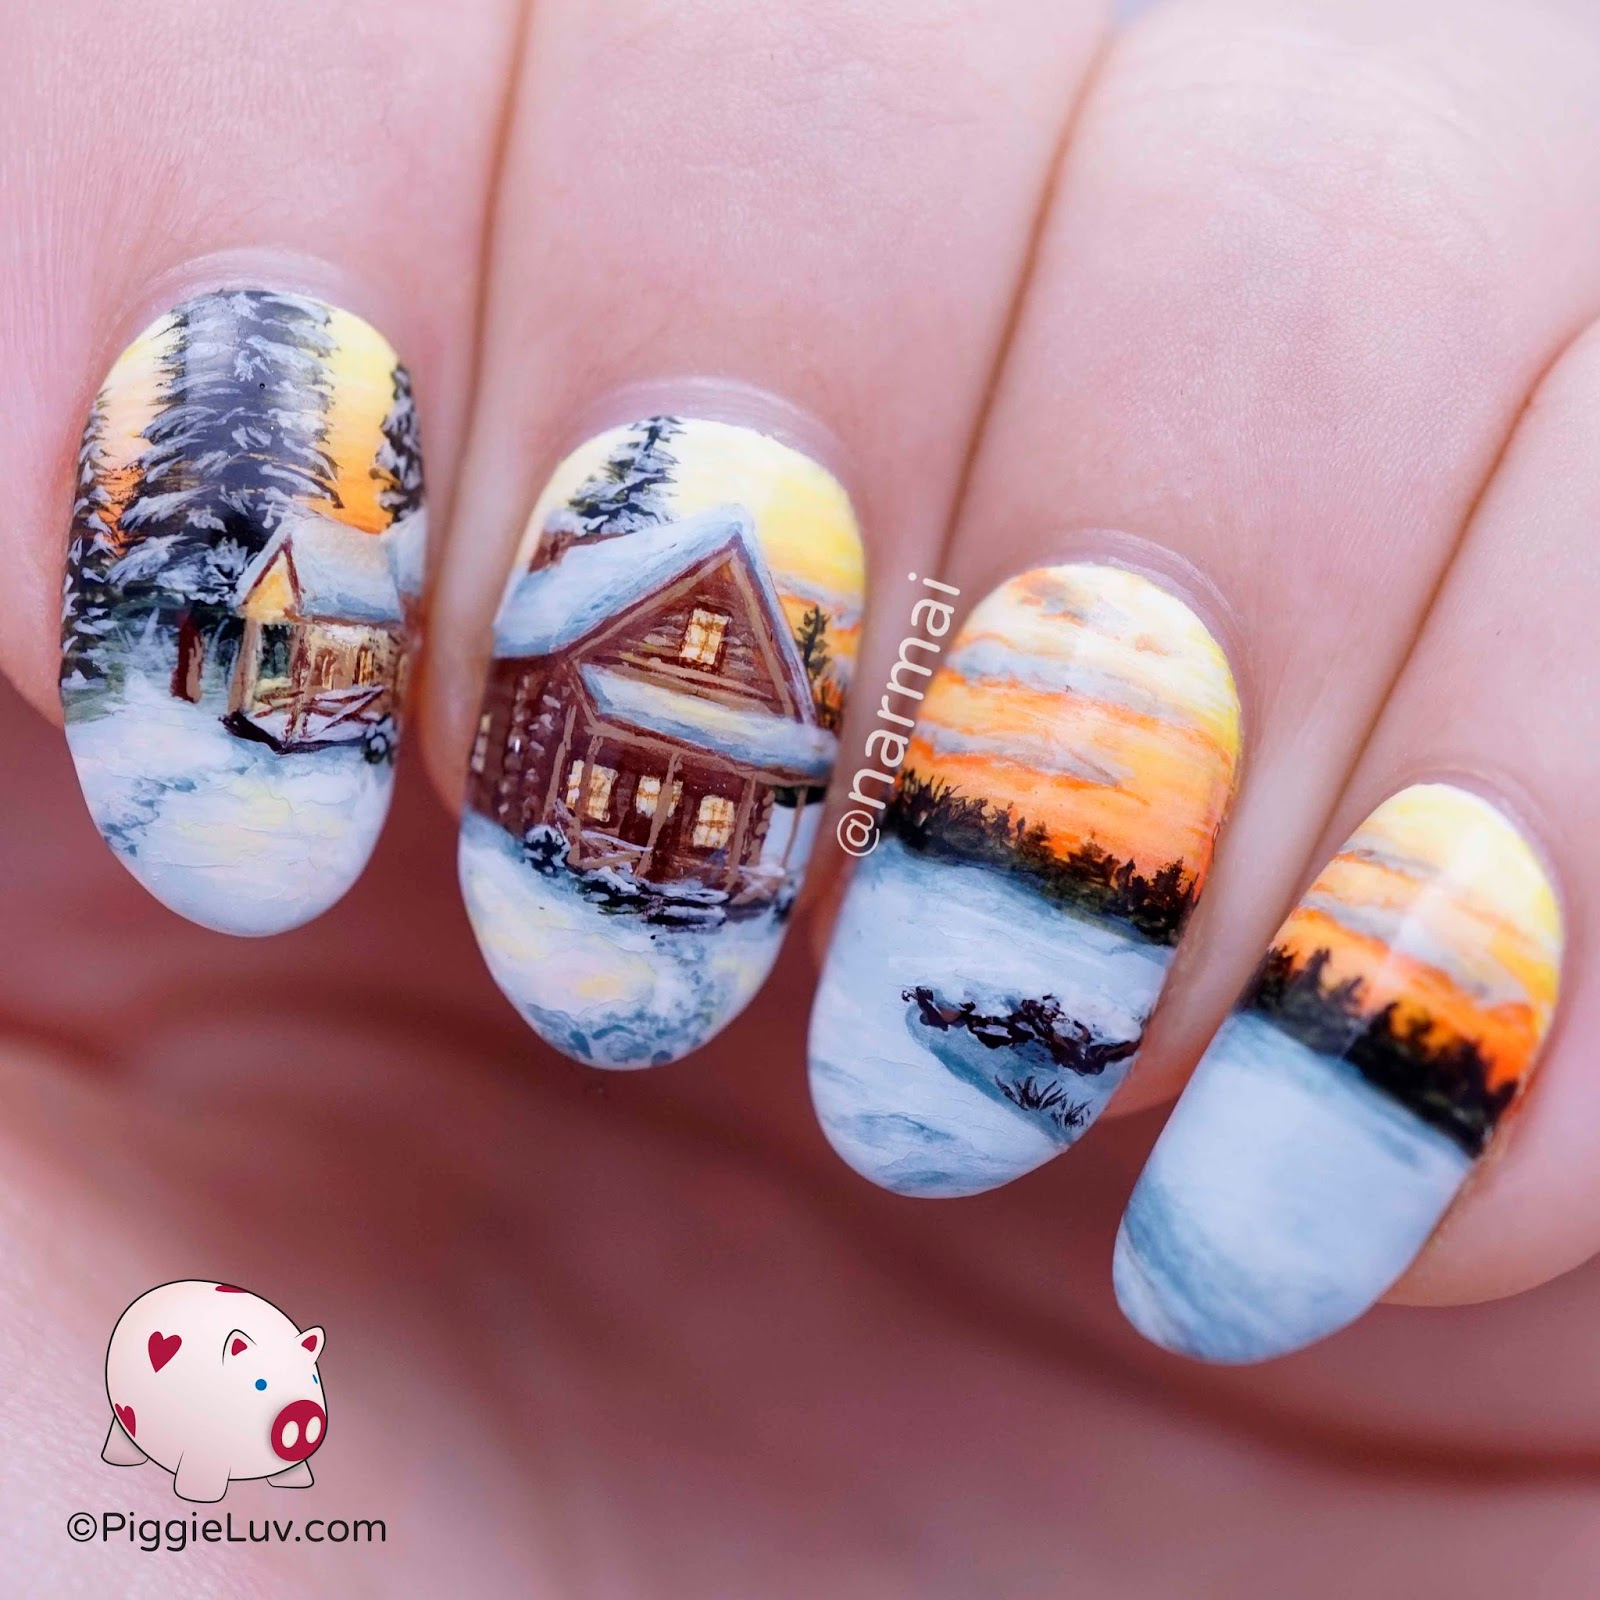 piggieluv freehand winter cabin landscape nail art. Black Bedroom Furniture Sets. Home Design Ideas